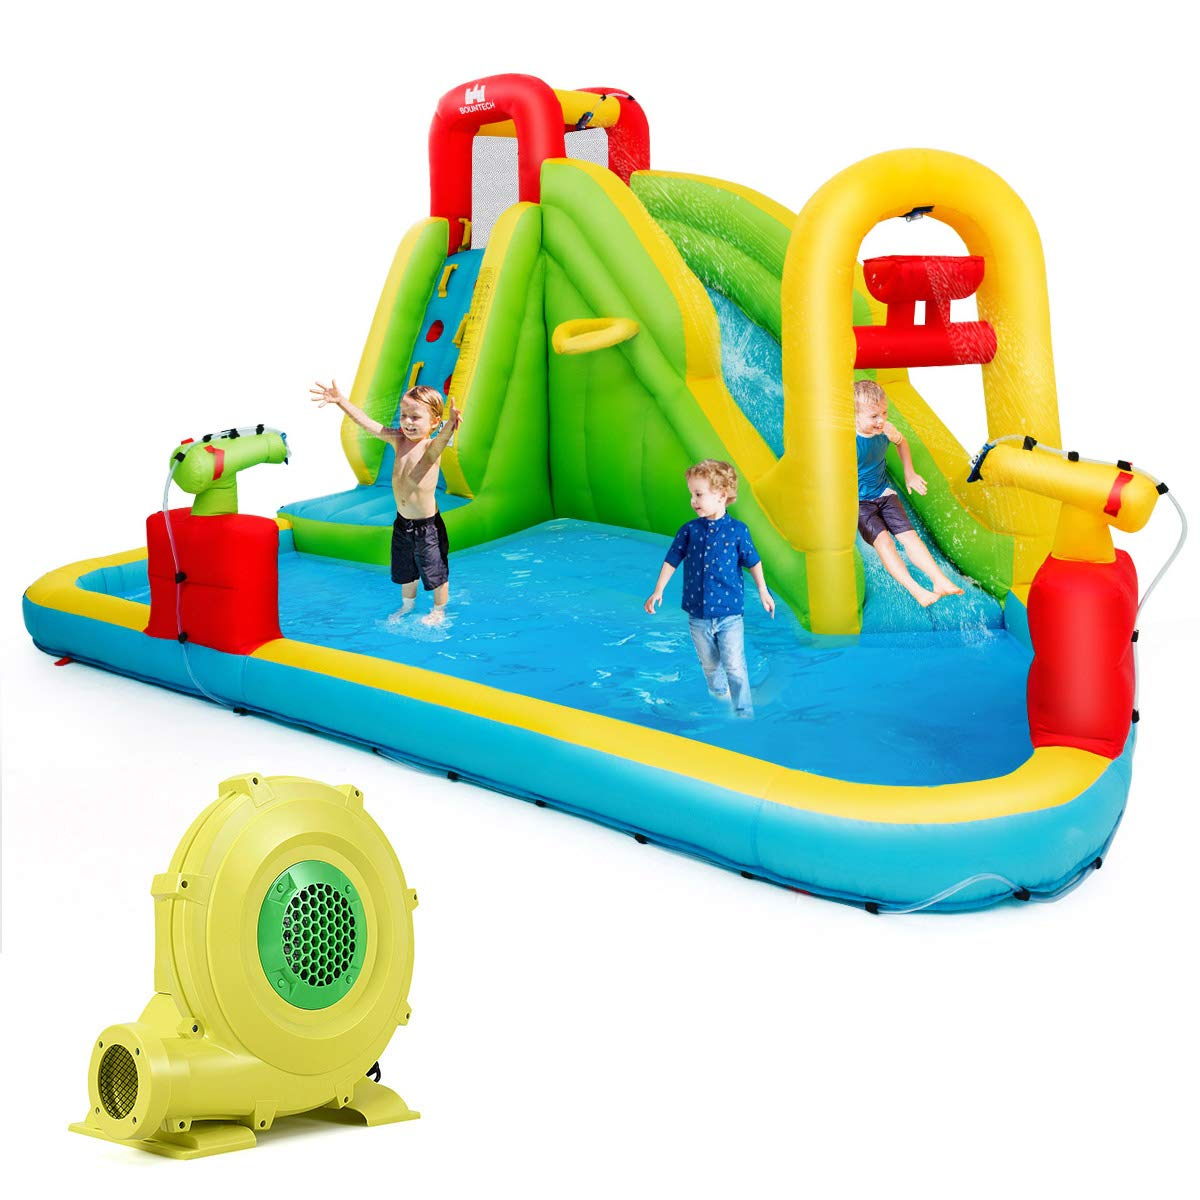 BOUNTECH Inflatable Bounce House, 7-In-1 Water Pool Slide w/ Climbing Wall, Water Cannons, Basketball Rim, Splash Pool, Including Oxford Carry Bag, Repairing Kit, Stakes, Hose, With 680W Air Blower by BOUNTECH